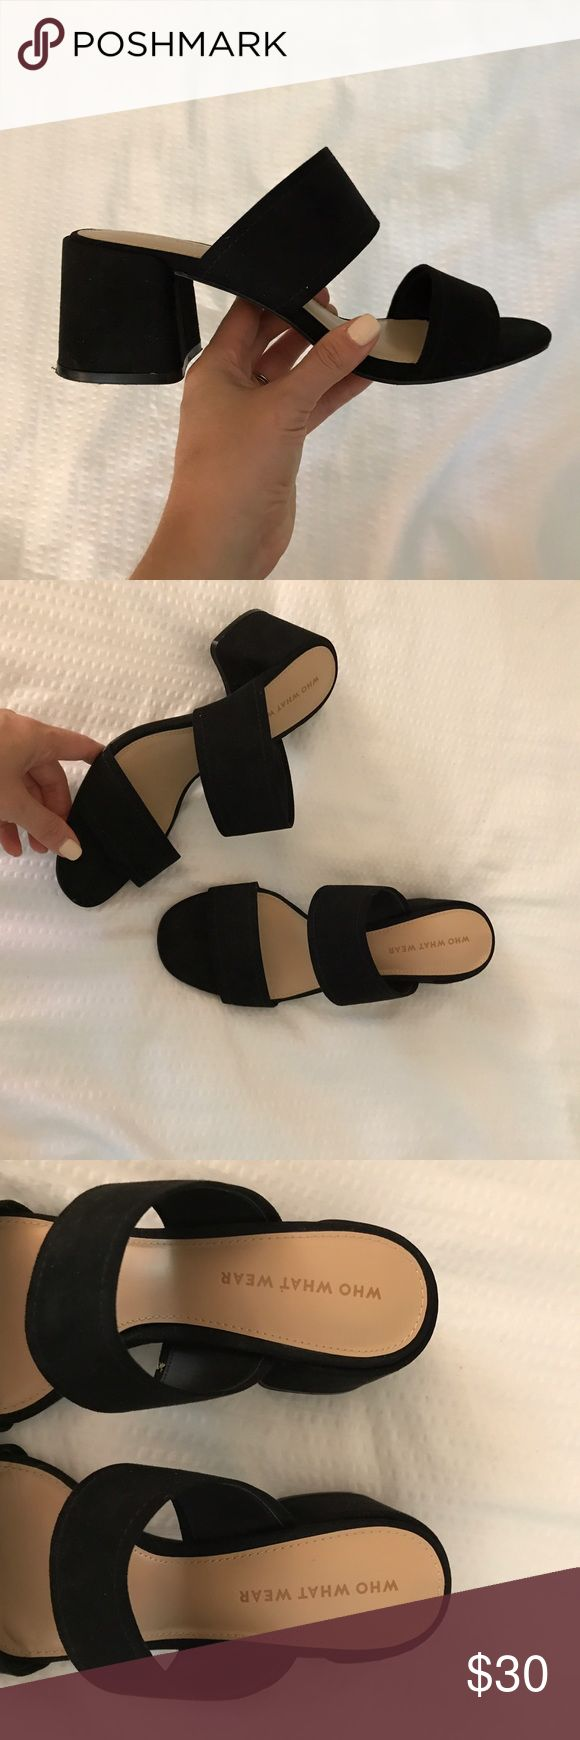 Black Mule Sandals Black stacked heel mule sandals by Who What Wear. Worn once. Size 7. Who What Wear Shoes Sandals